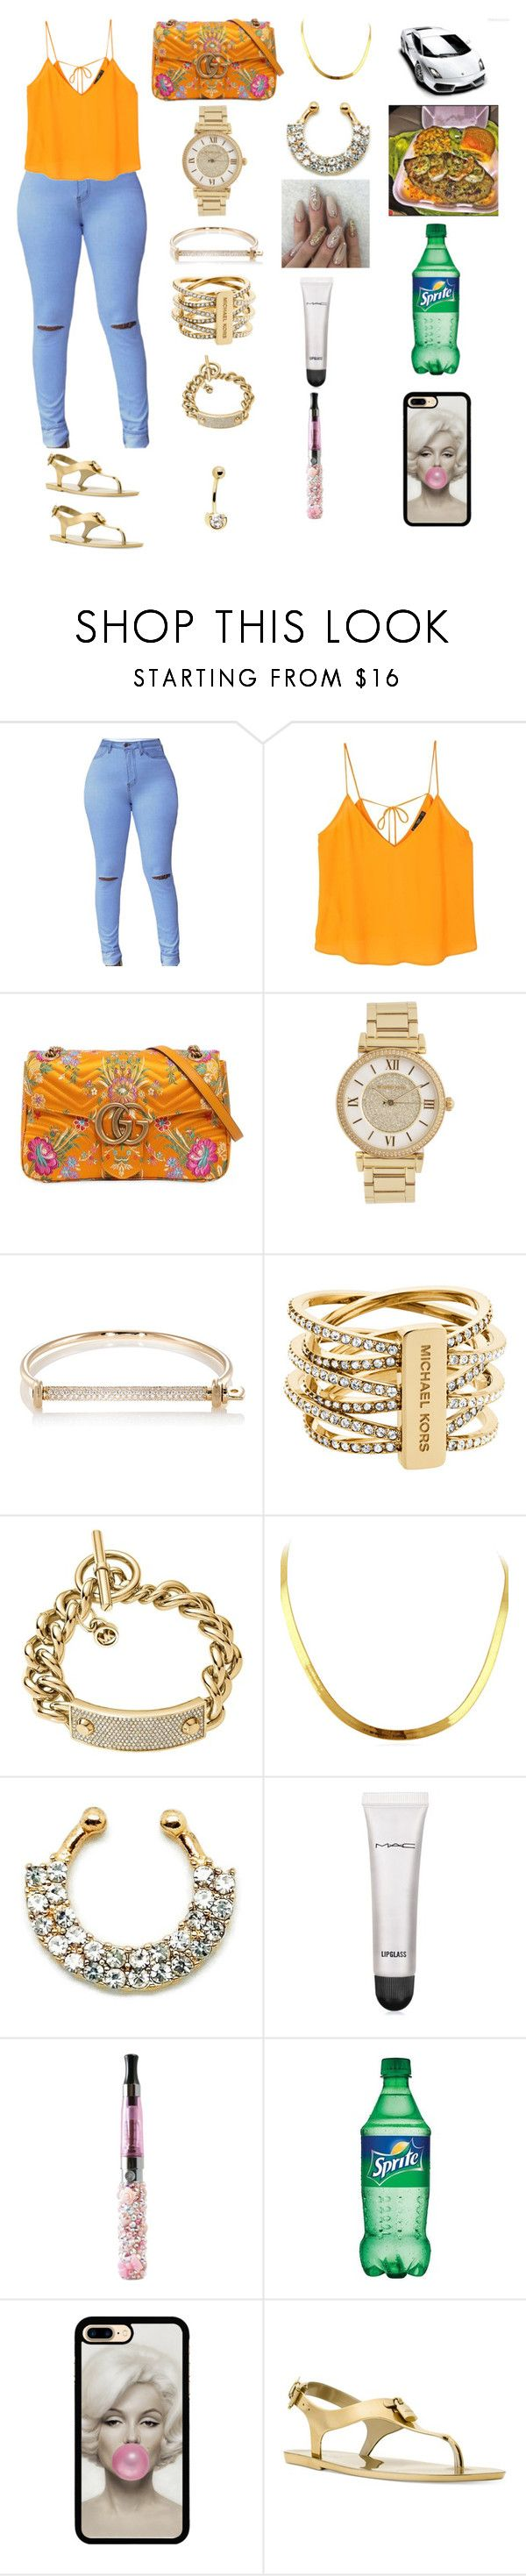 """Never settle for less 😘work"" by manija-jones on Polyvore featuring MANGO, Gucci, Michael Kors, MIANSAI and MAC Cosmetics"